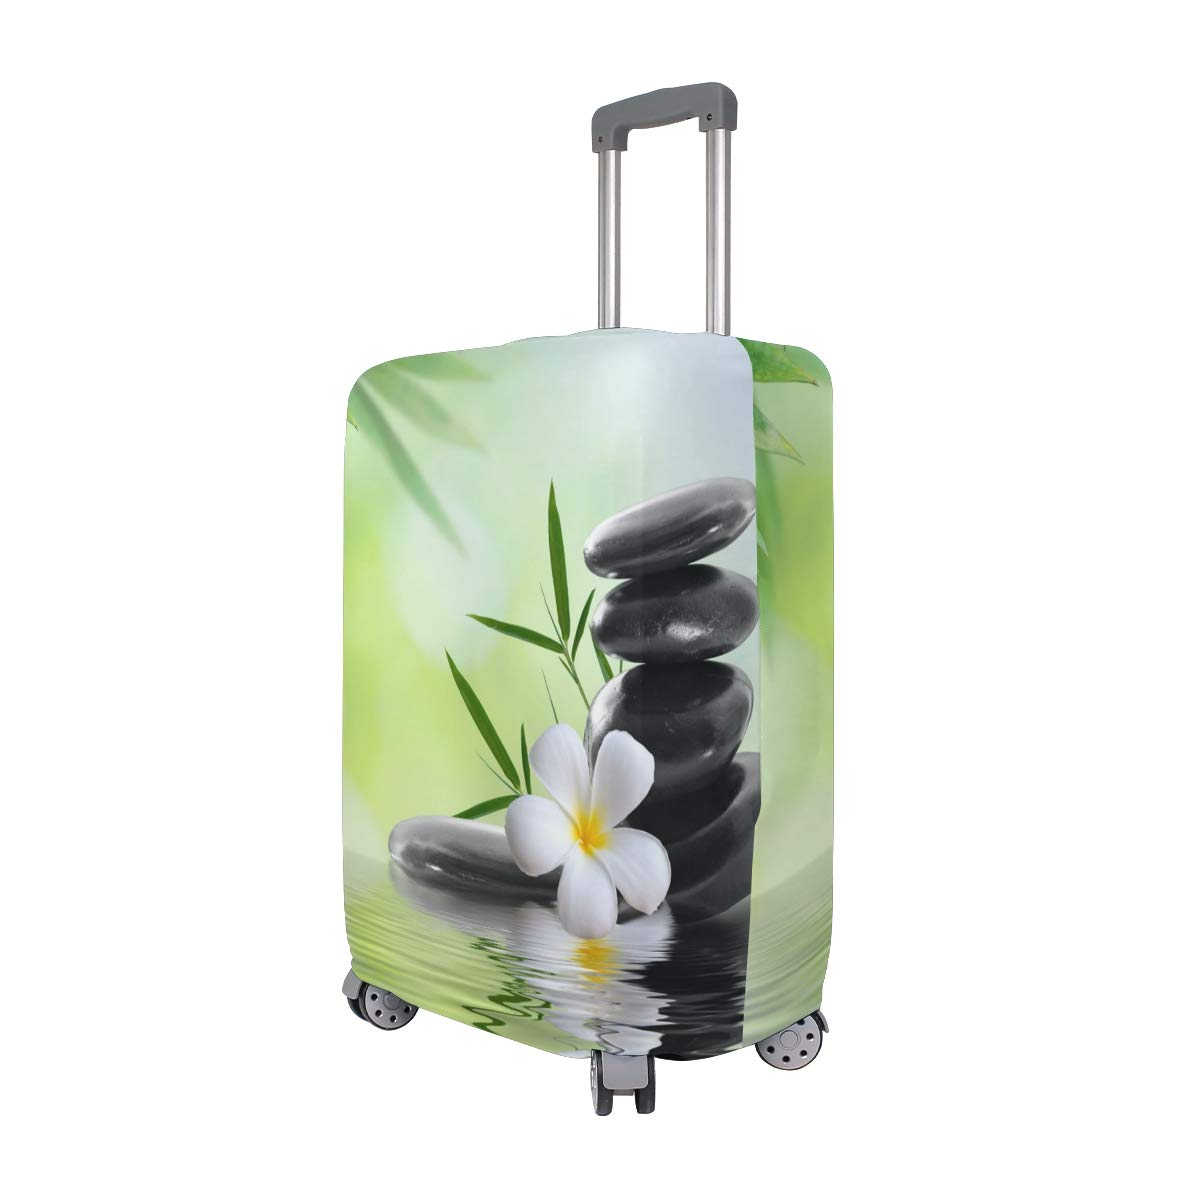 Nanmma Cute 3D Bamboo And Stone Pattern Luggage Protector Travel Luggage Cover Trolley Case Protective Cover Fits 18-32 Inch